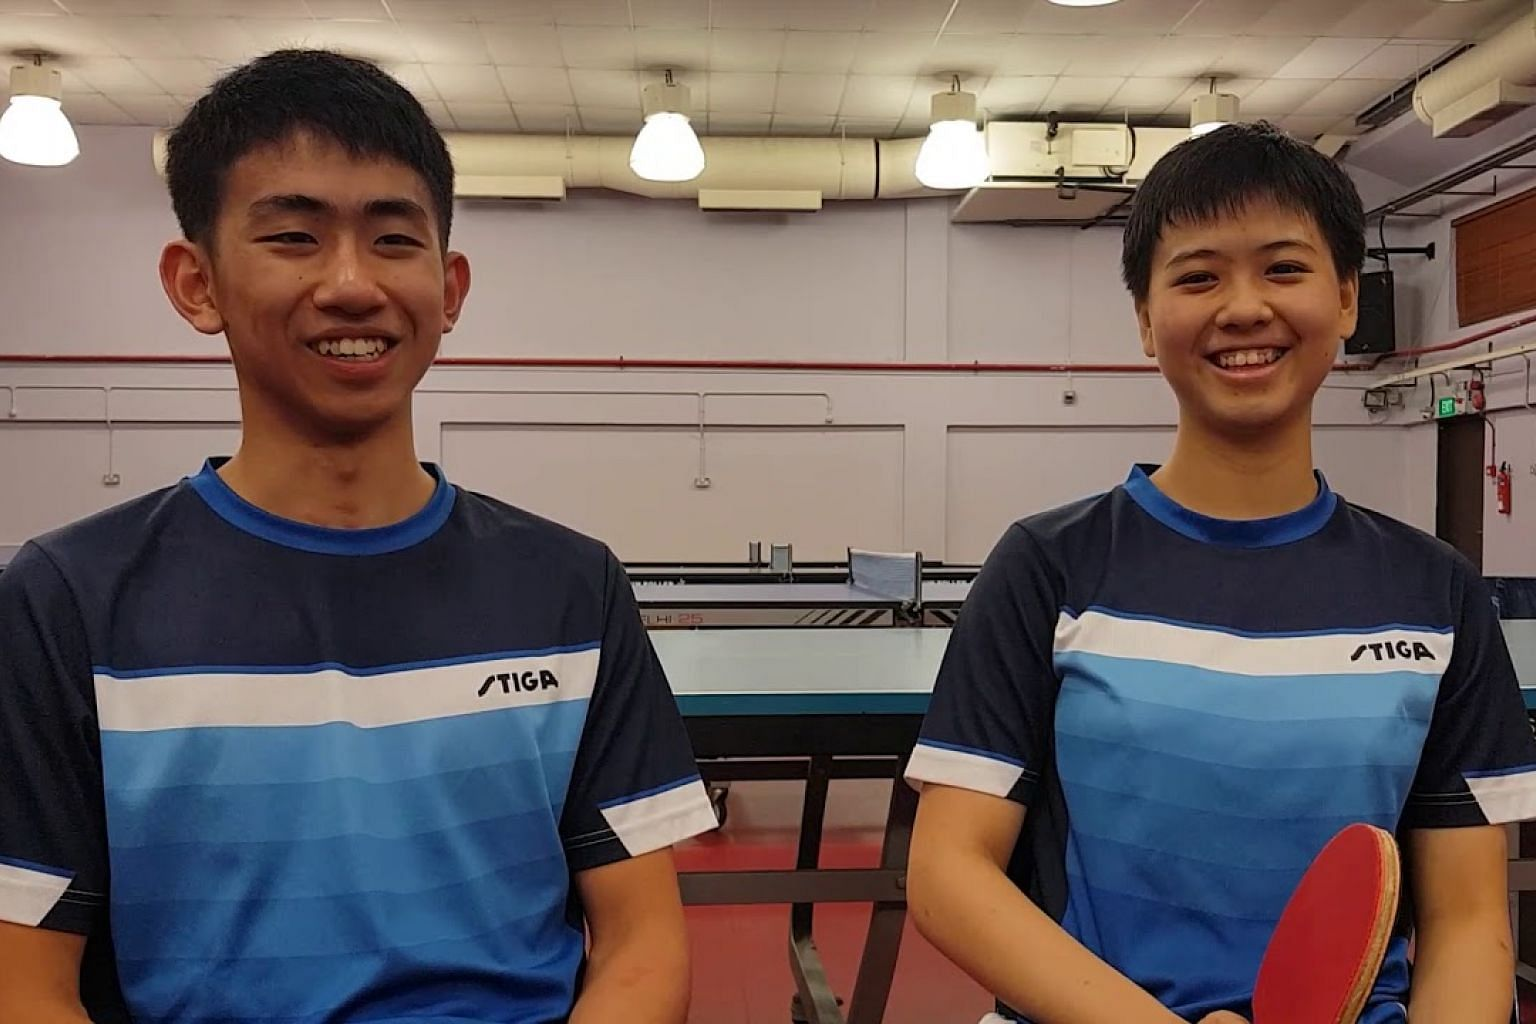 Table tennis players Koen Pang, 16, and Goi Rui Xuan, 17, on the Youth Olympic Games